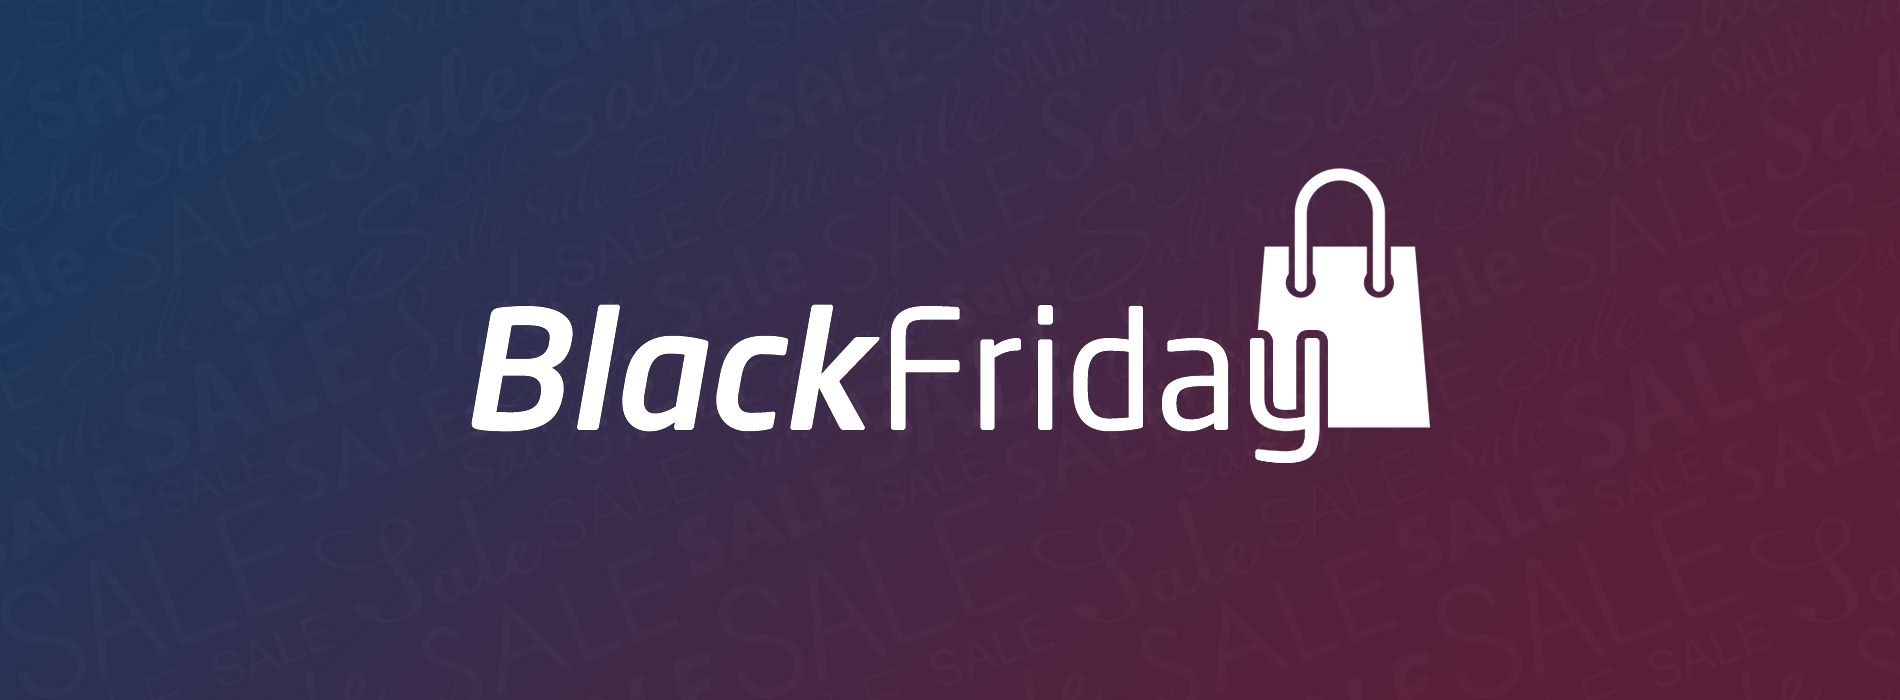 10 Last Minute Fixes for Online Retailers Before Black Friday